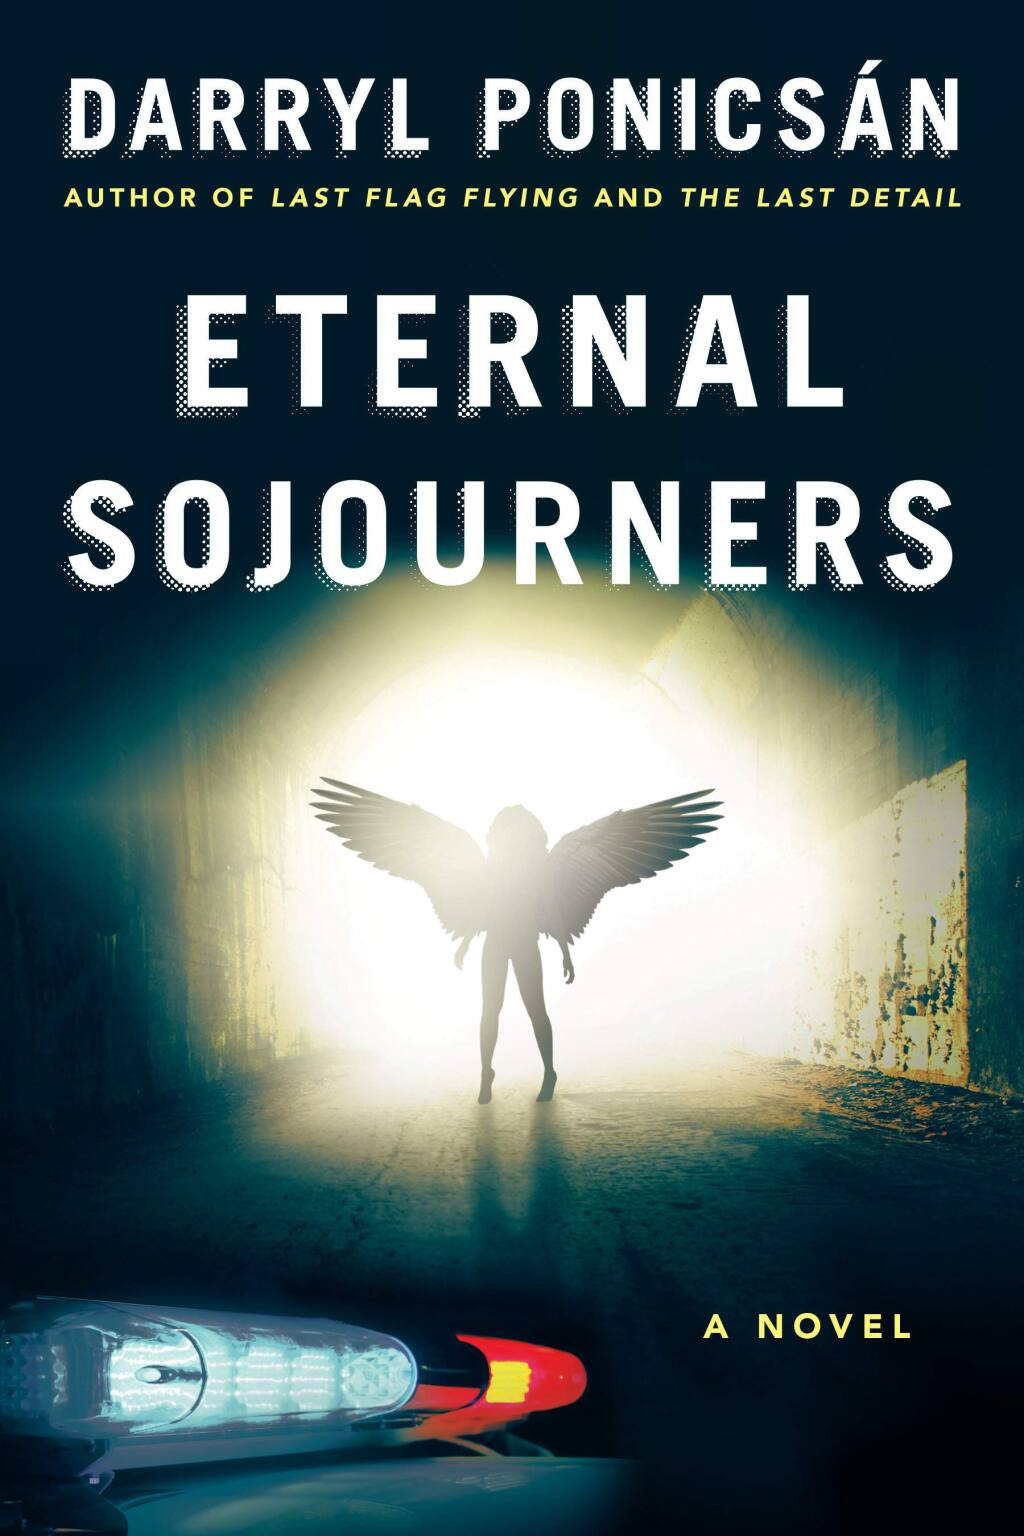 'Eternal Sojourners' by Darryl Ponicsan is a novel about a town some might think resembles Sonoma. Available in hardcover and as an e-book.